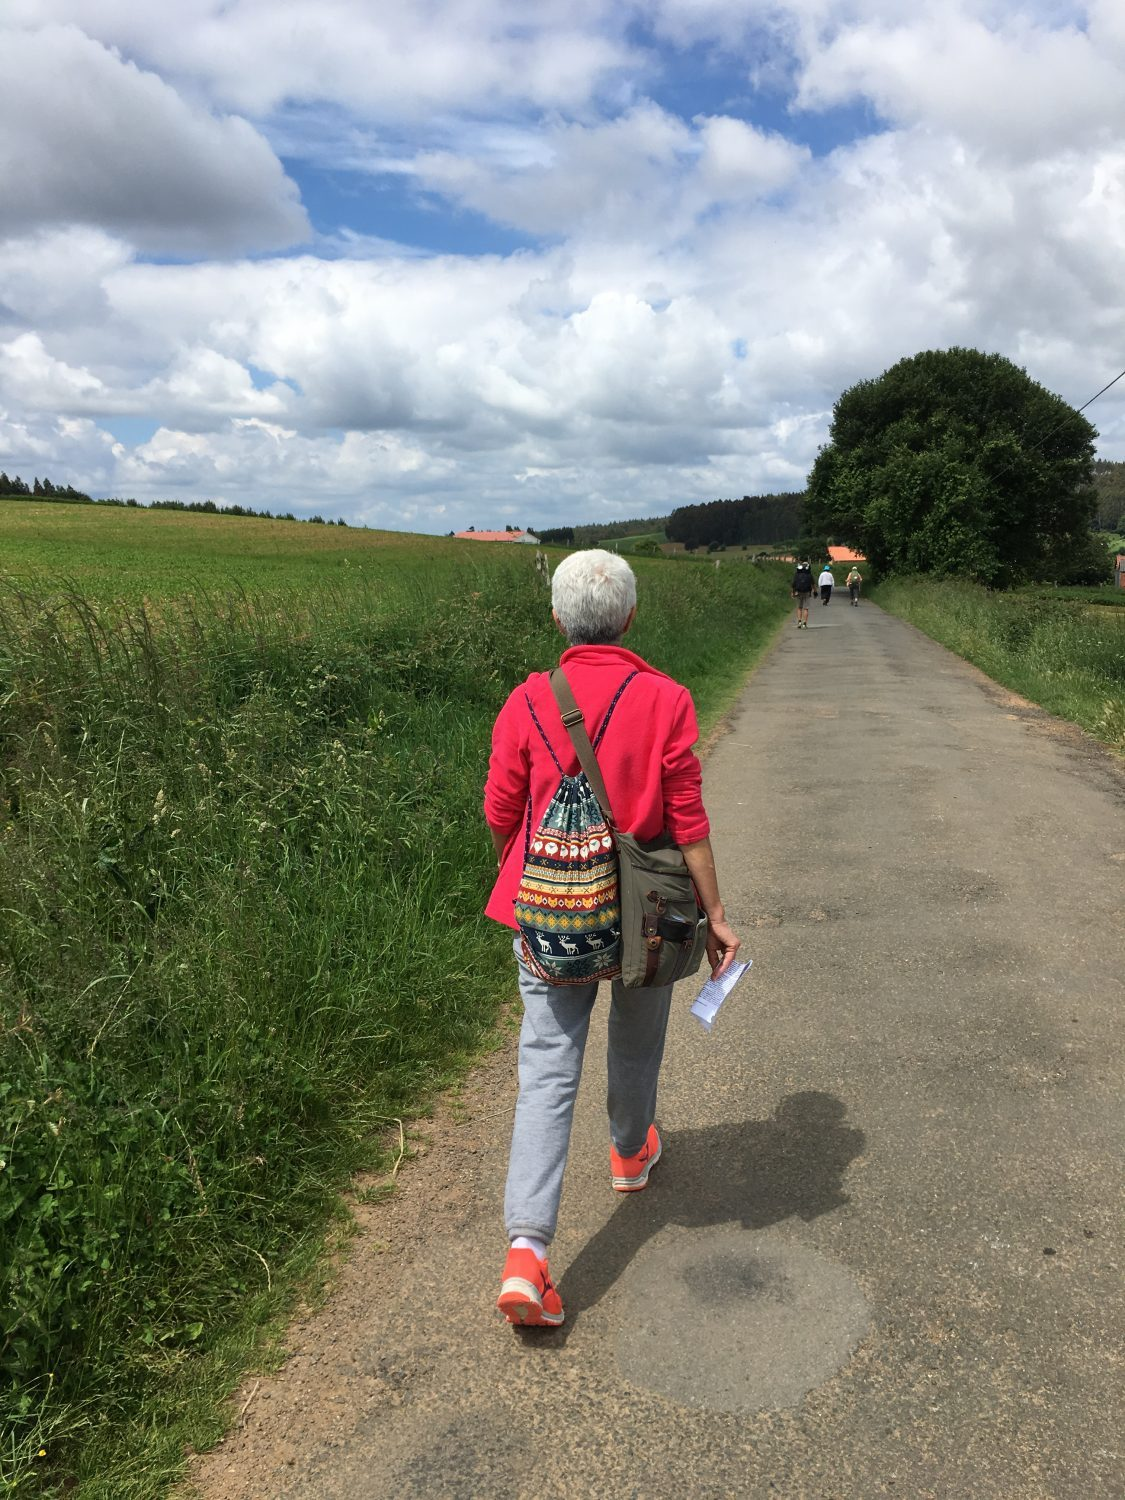 Walking single file on the camino - is the camino packed with tourists?